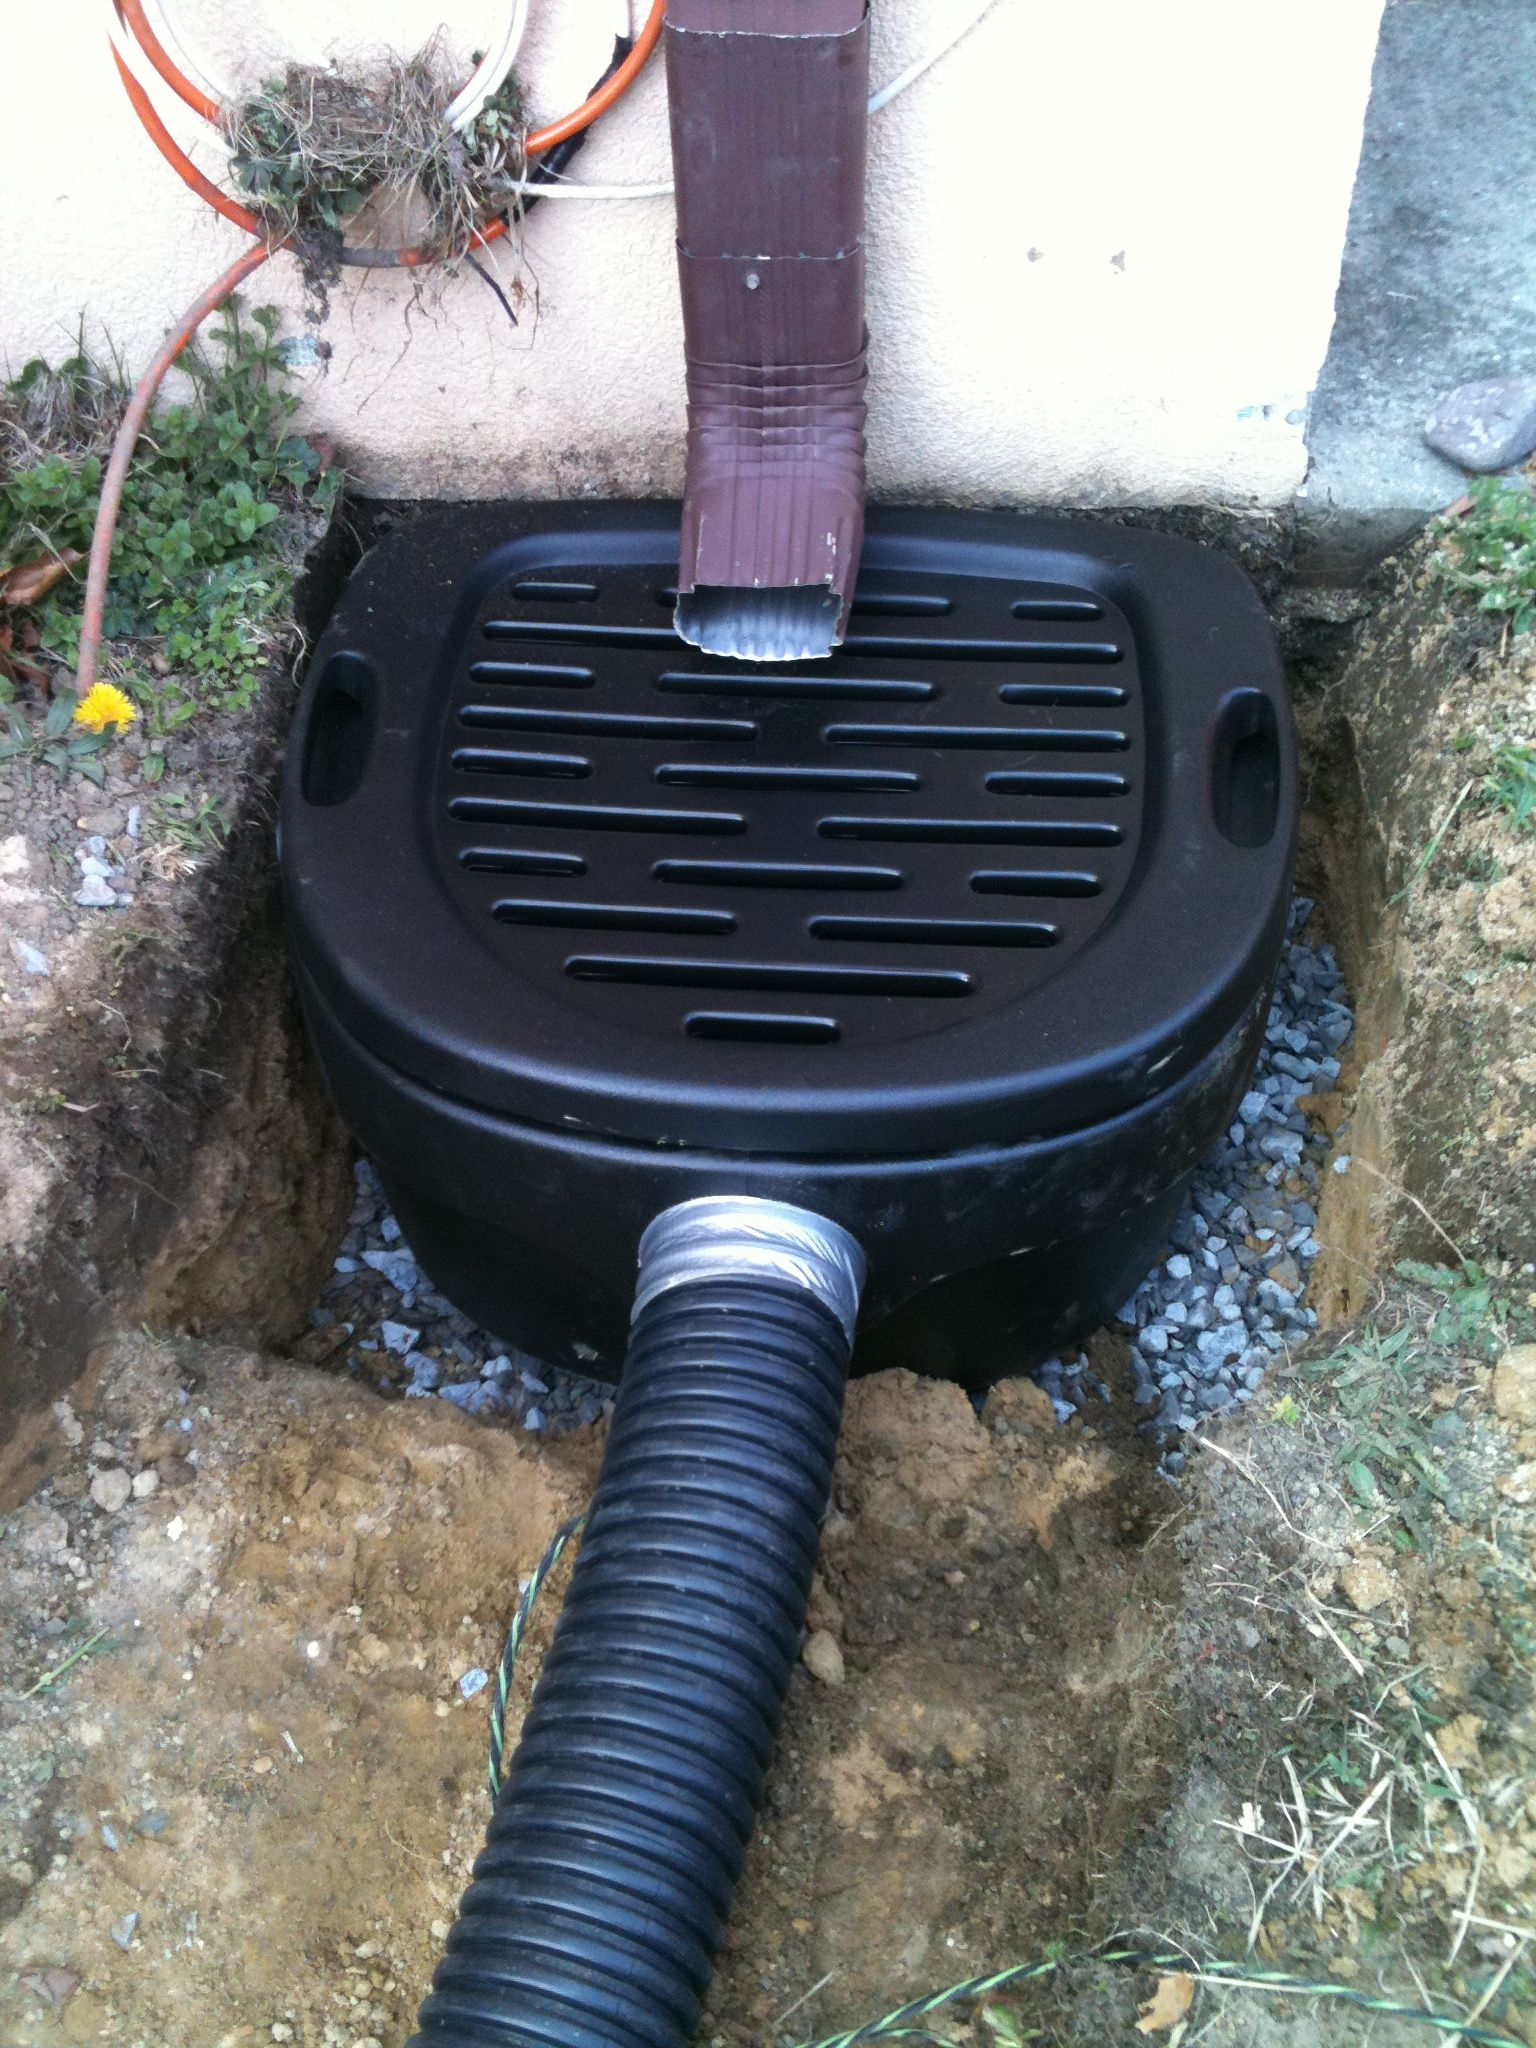 Downspout Pre Filter Rainwater Harvesting In 2019